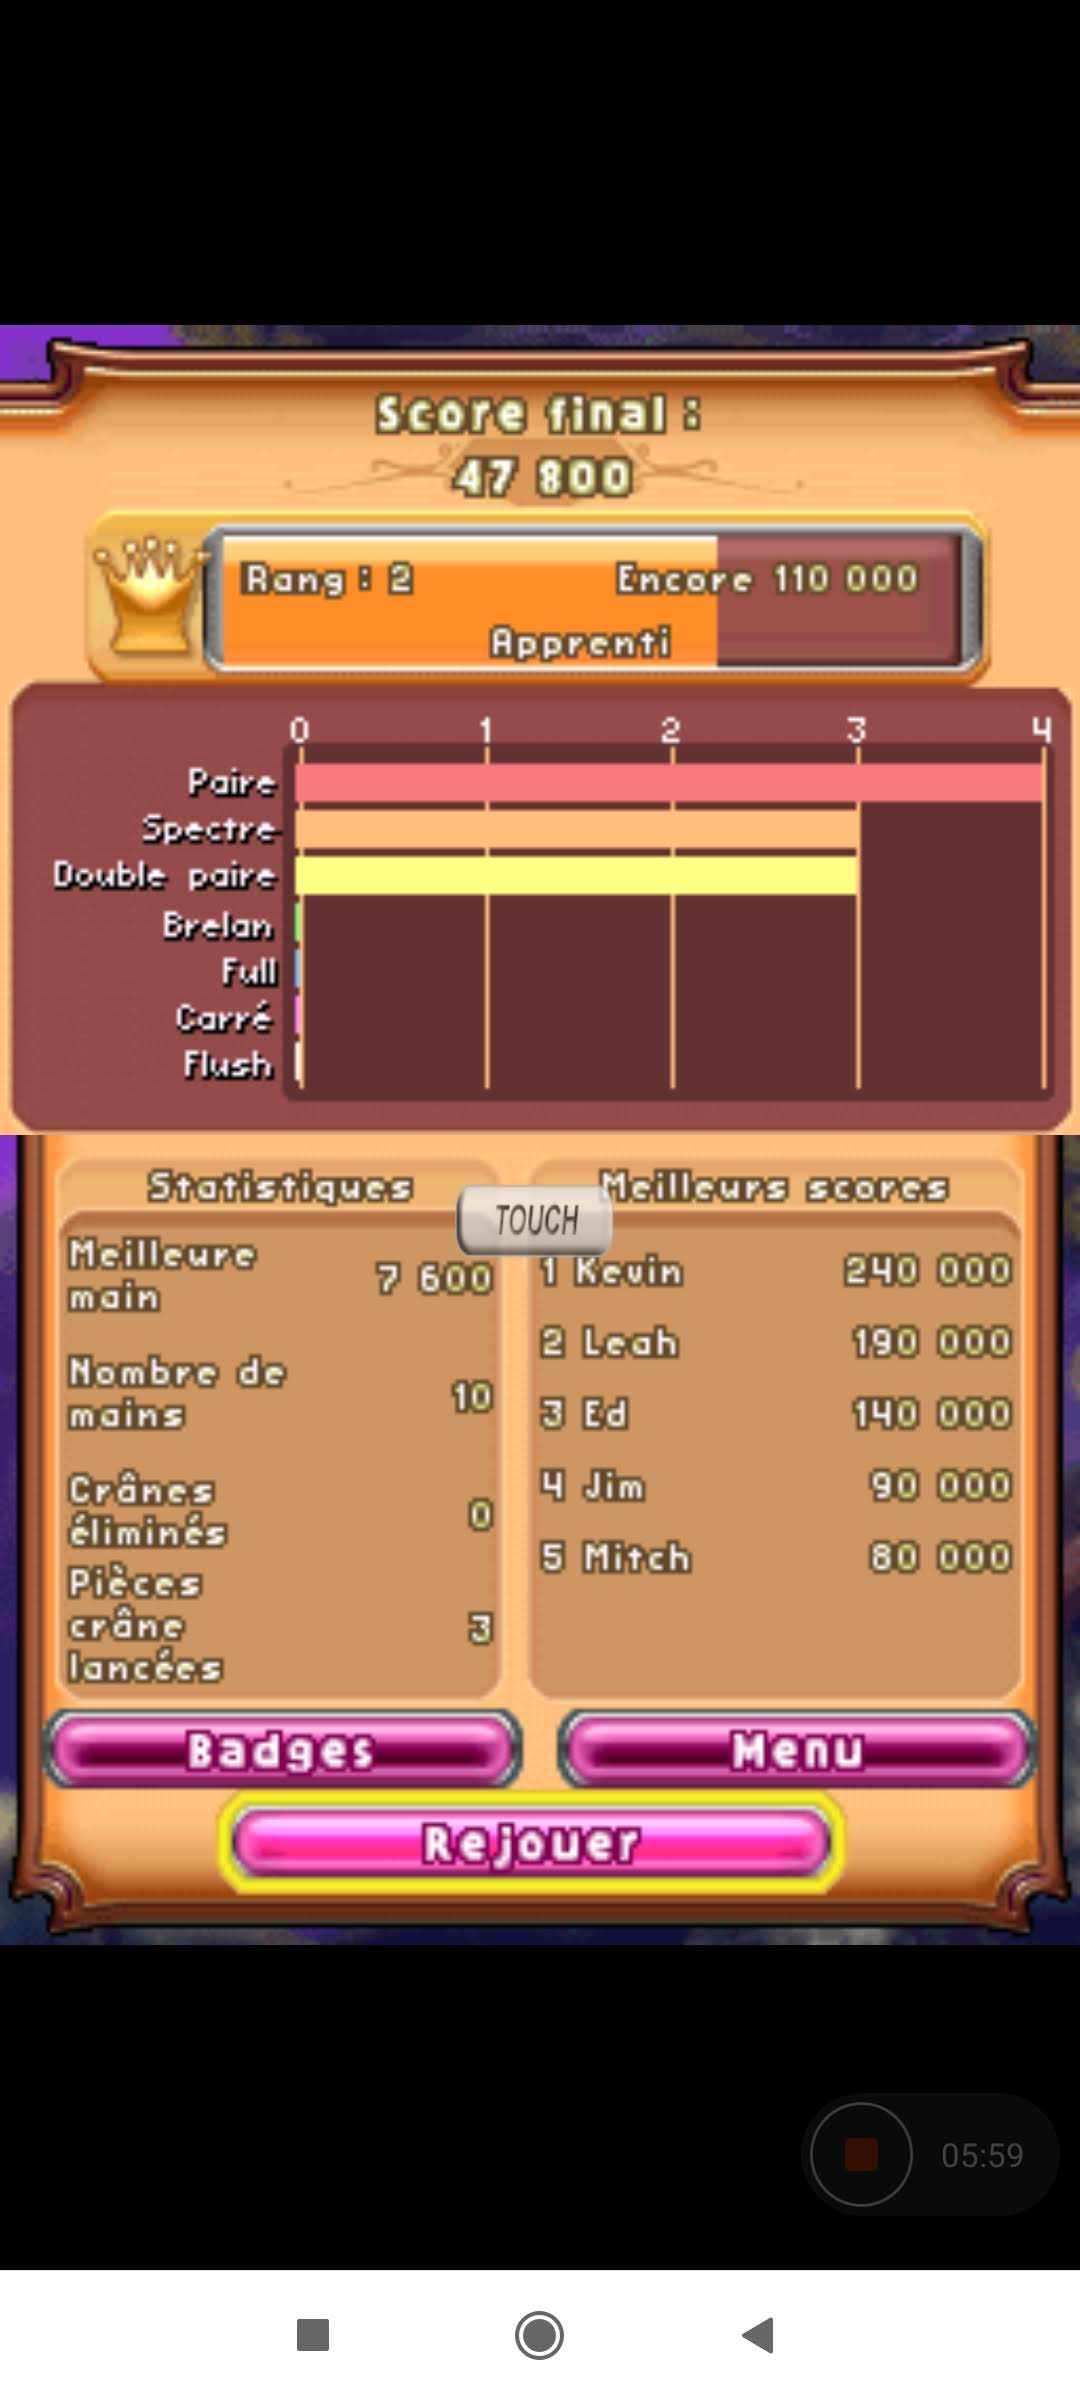 Larquey: Bejeweled 3: Poker [Skull Coin Flips] (Nintendo DS Emulated) 3 points on 2020-09-26 03:19:26